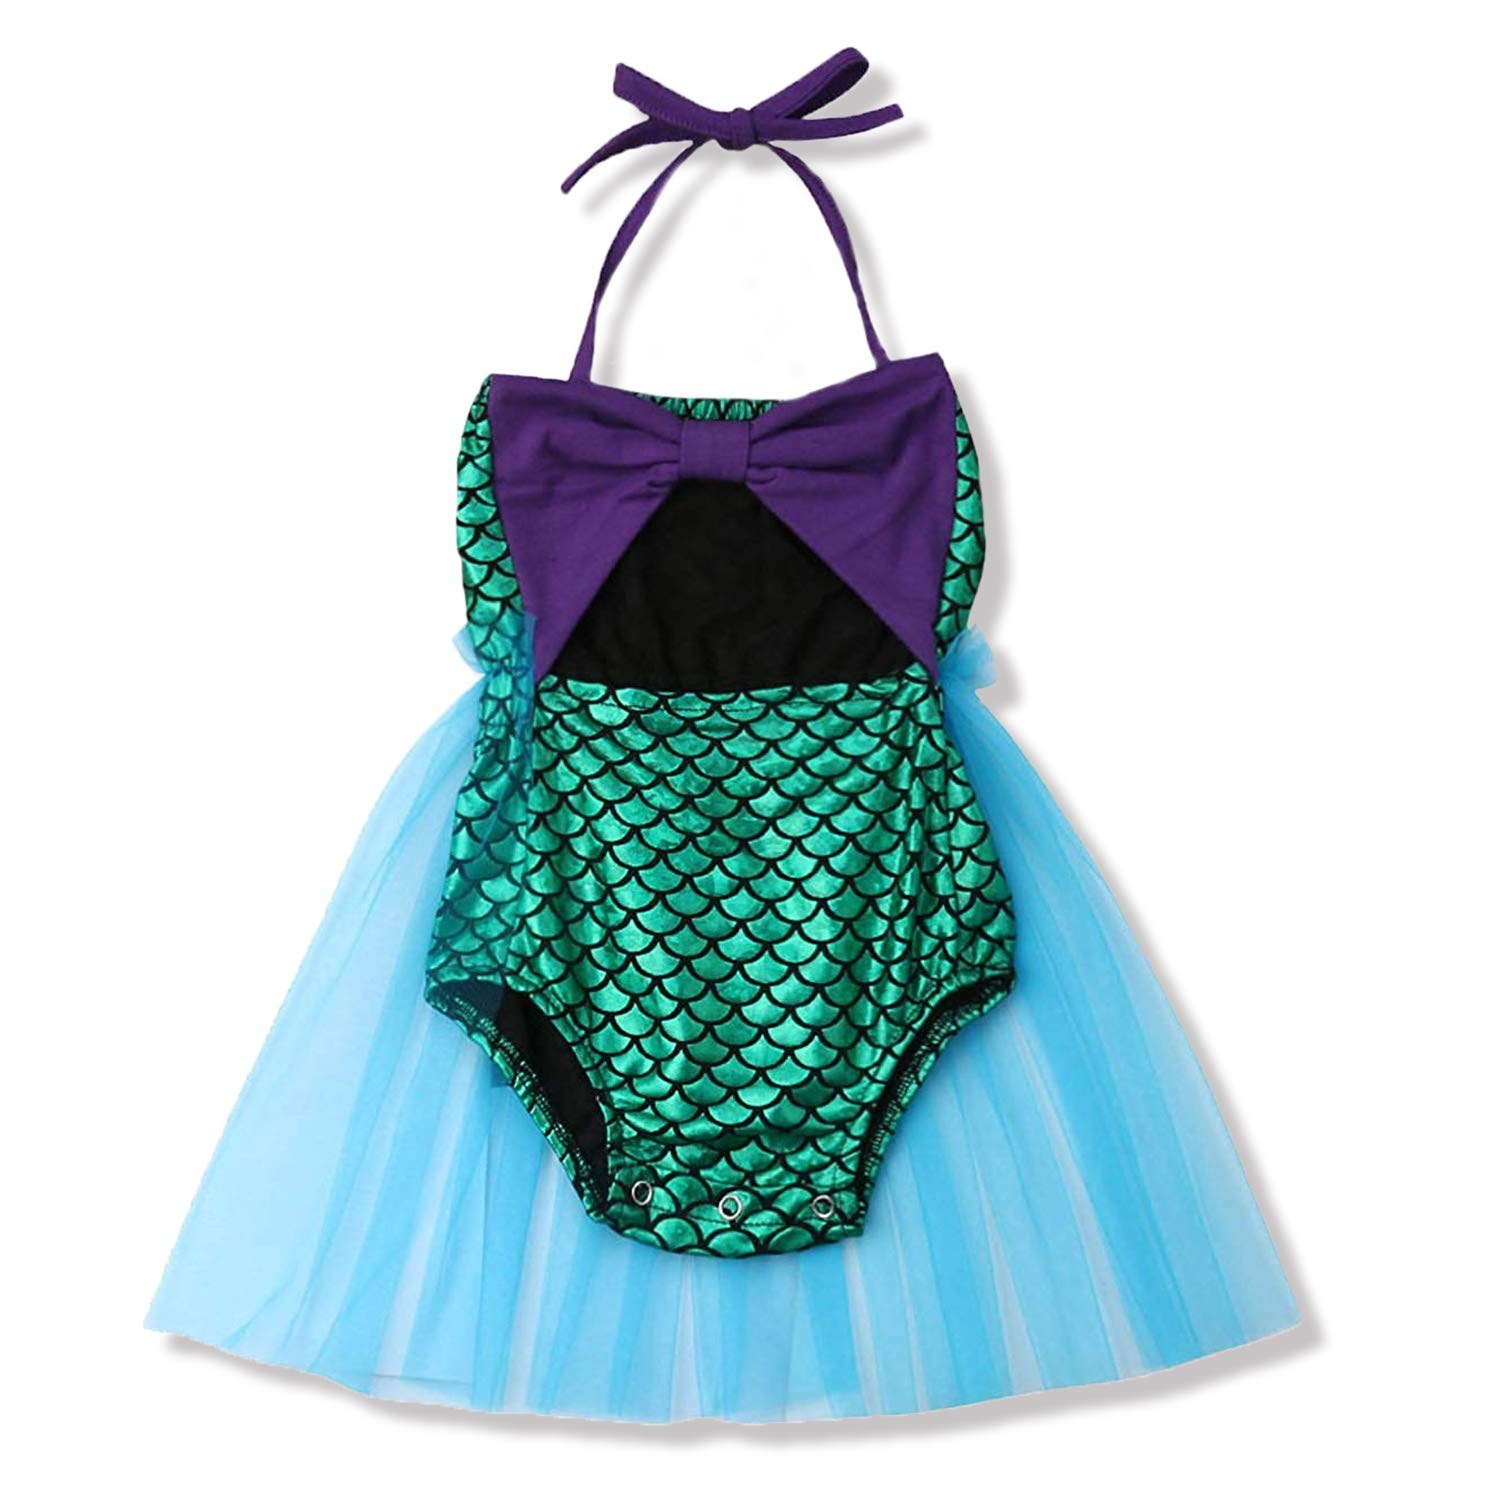 MILWAY Infant Baby Girls Mermaid Romper Summer Outfits Set 1pc Lace Halter Ruffle Tutu Skirt Jumpsuit Swimsuit